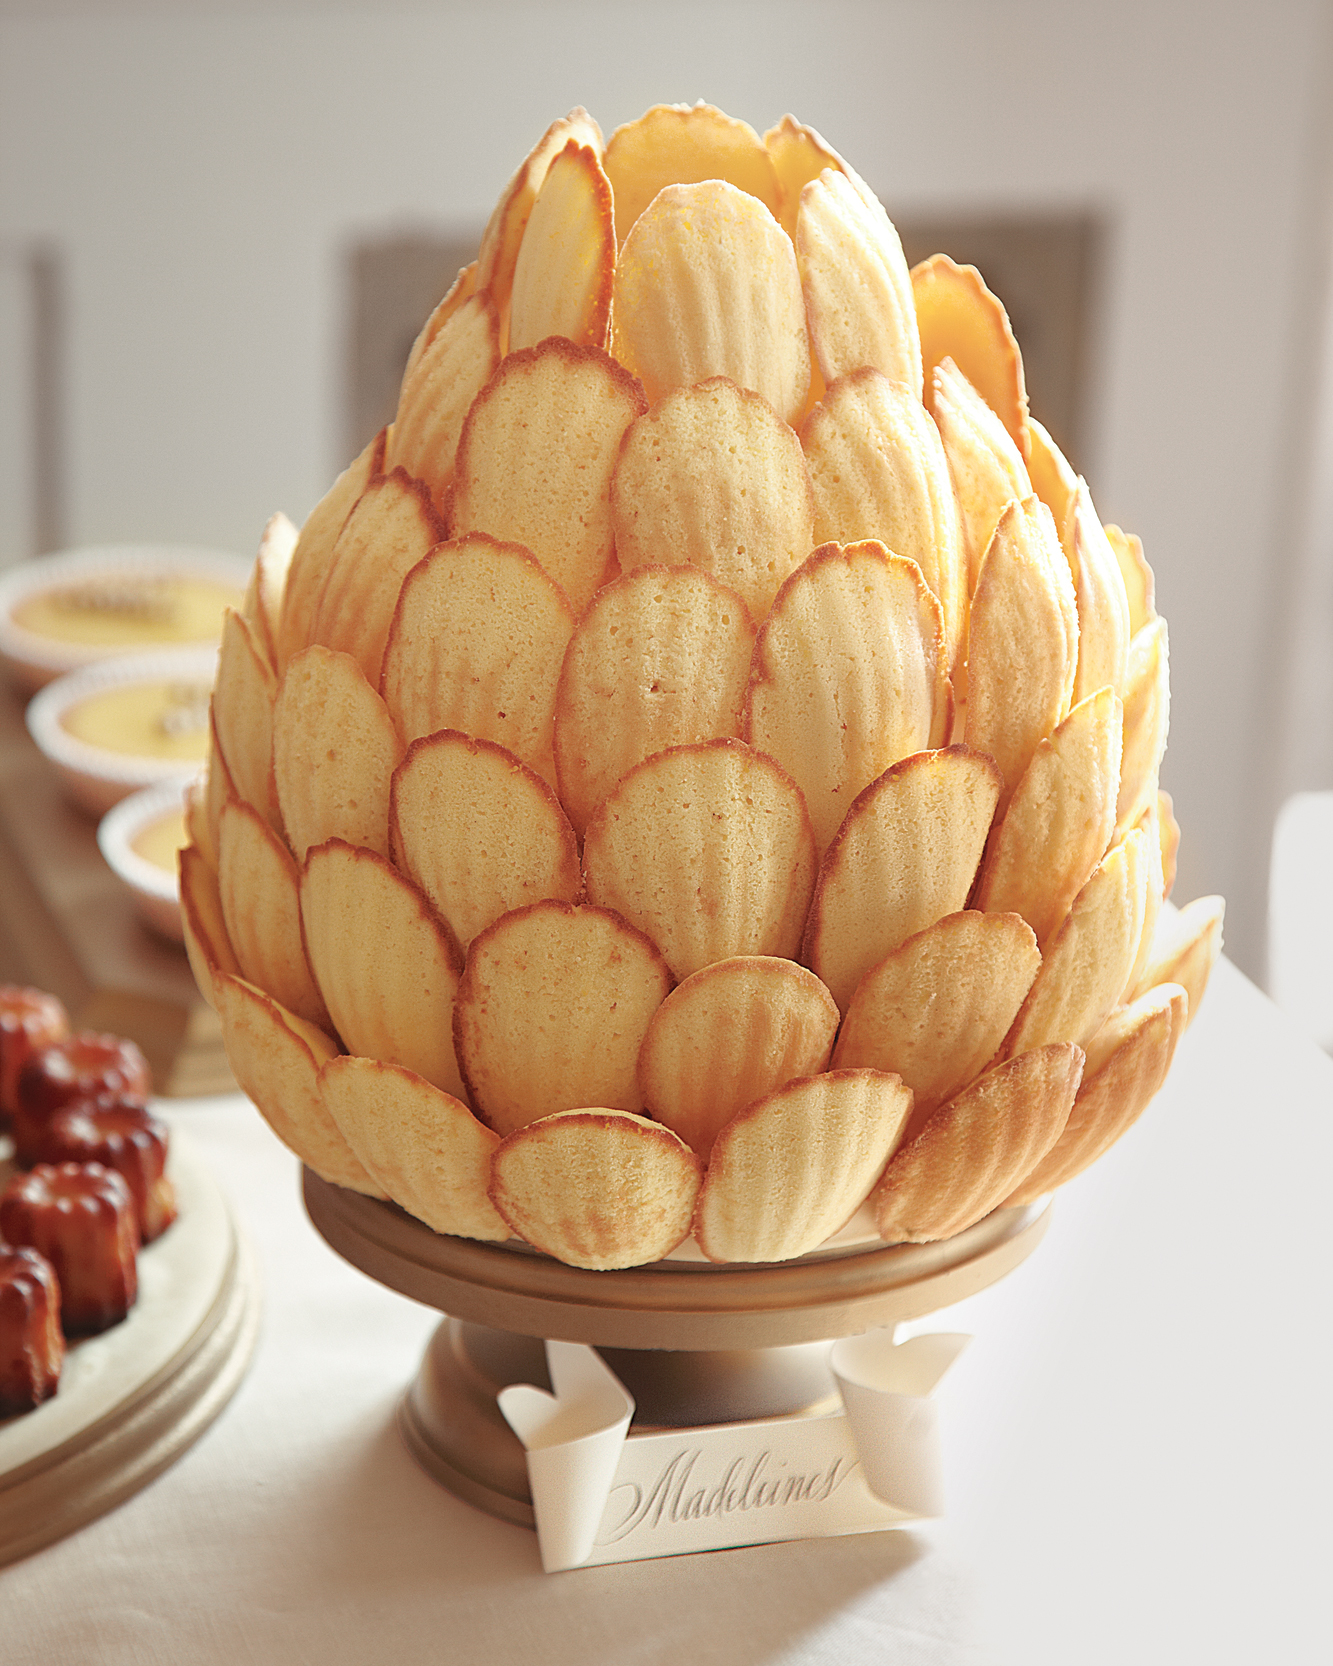 Madeleine Pineapple Display